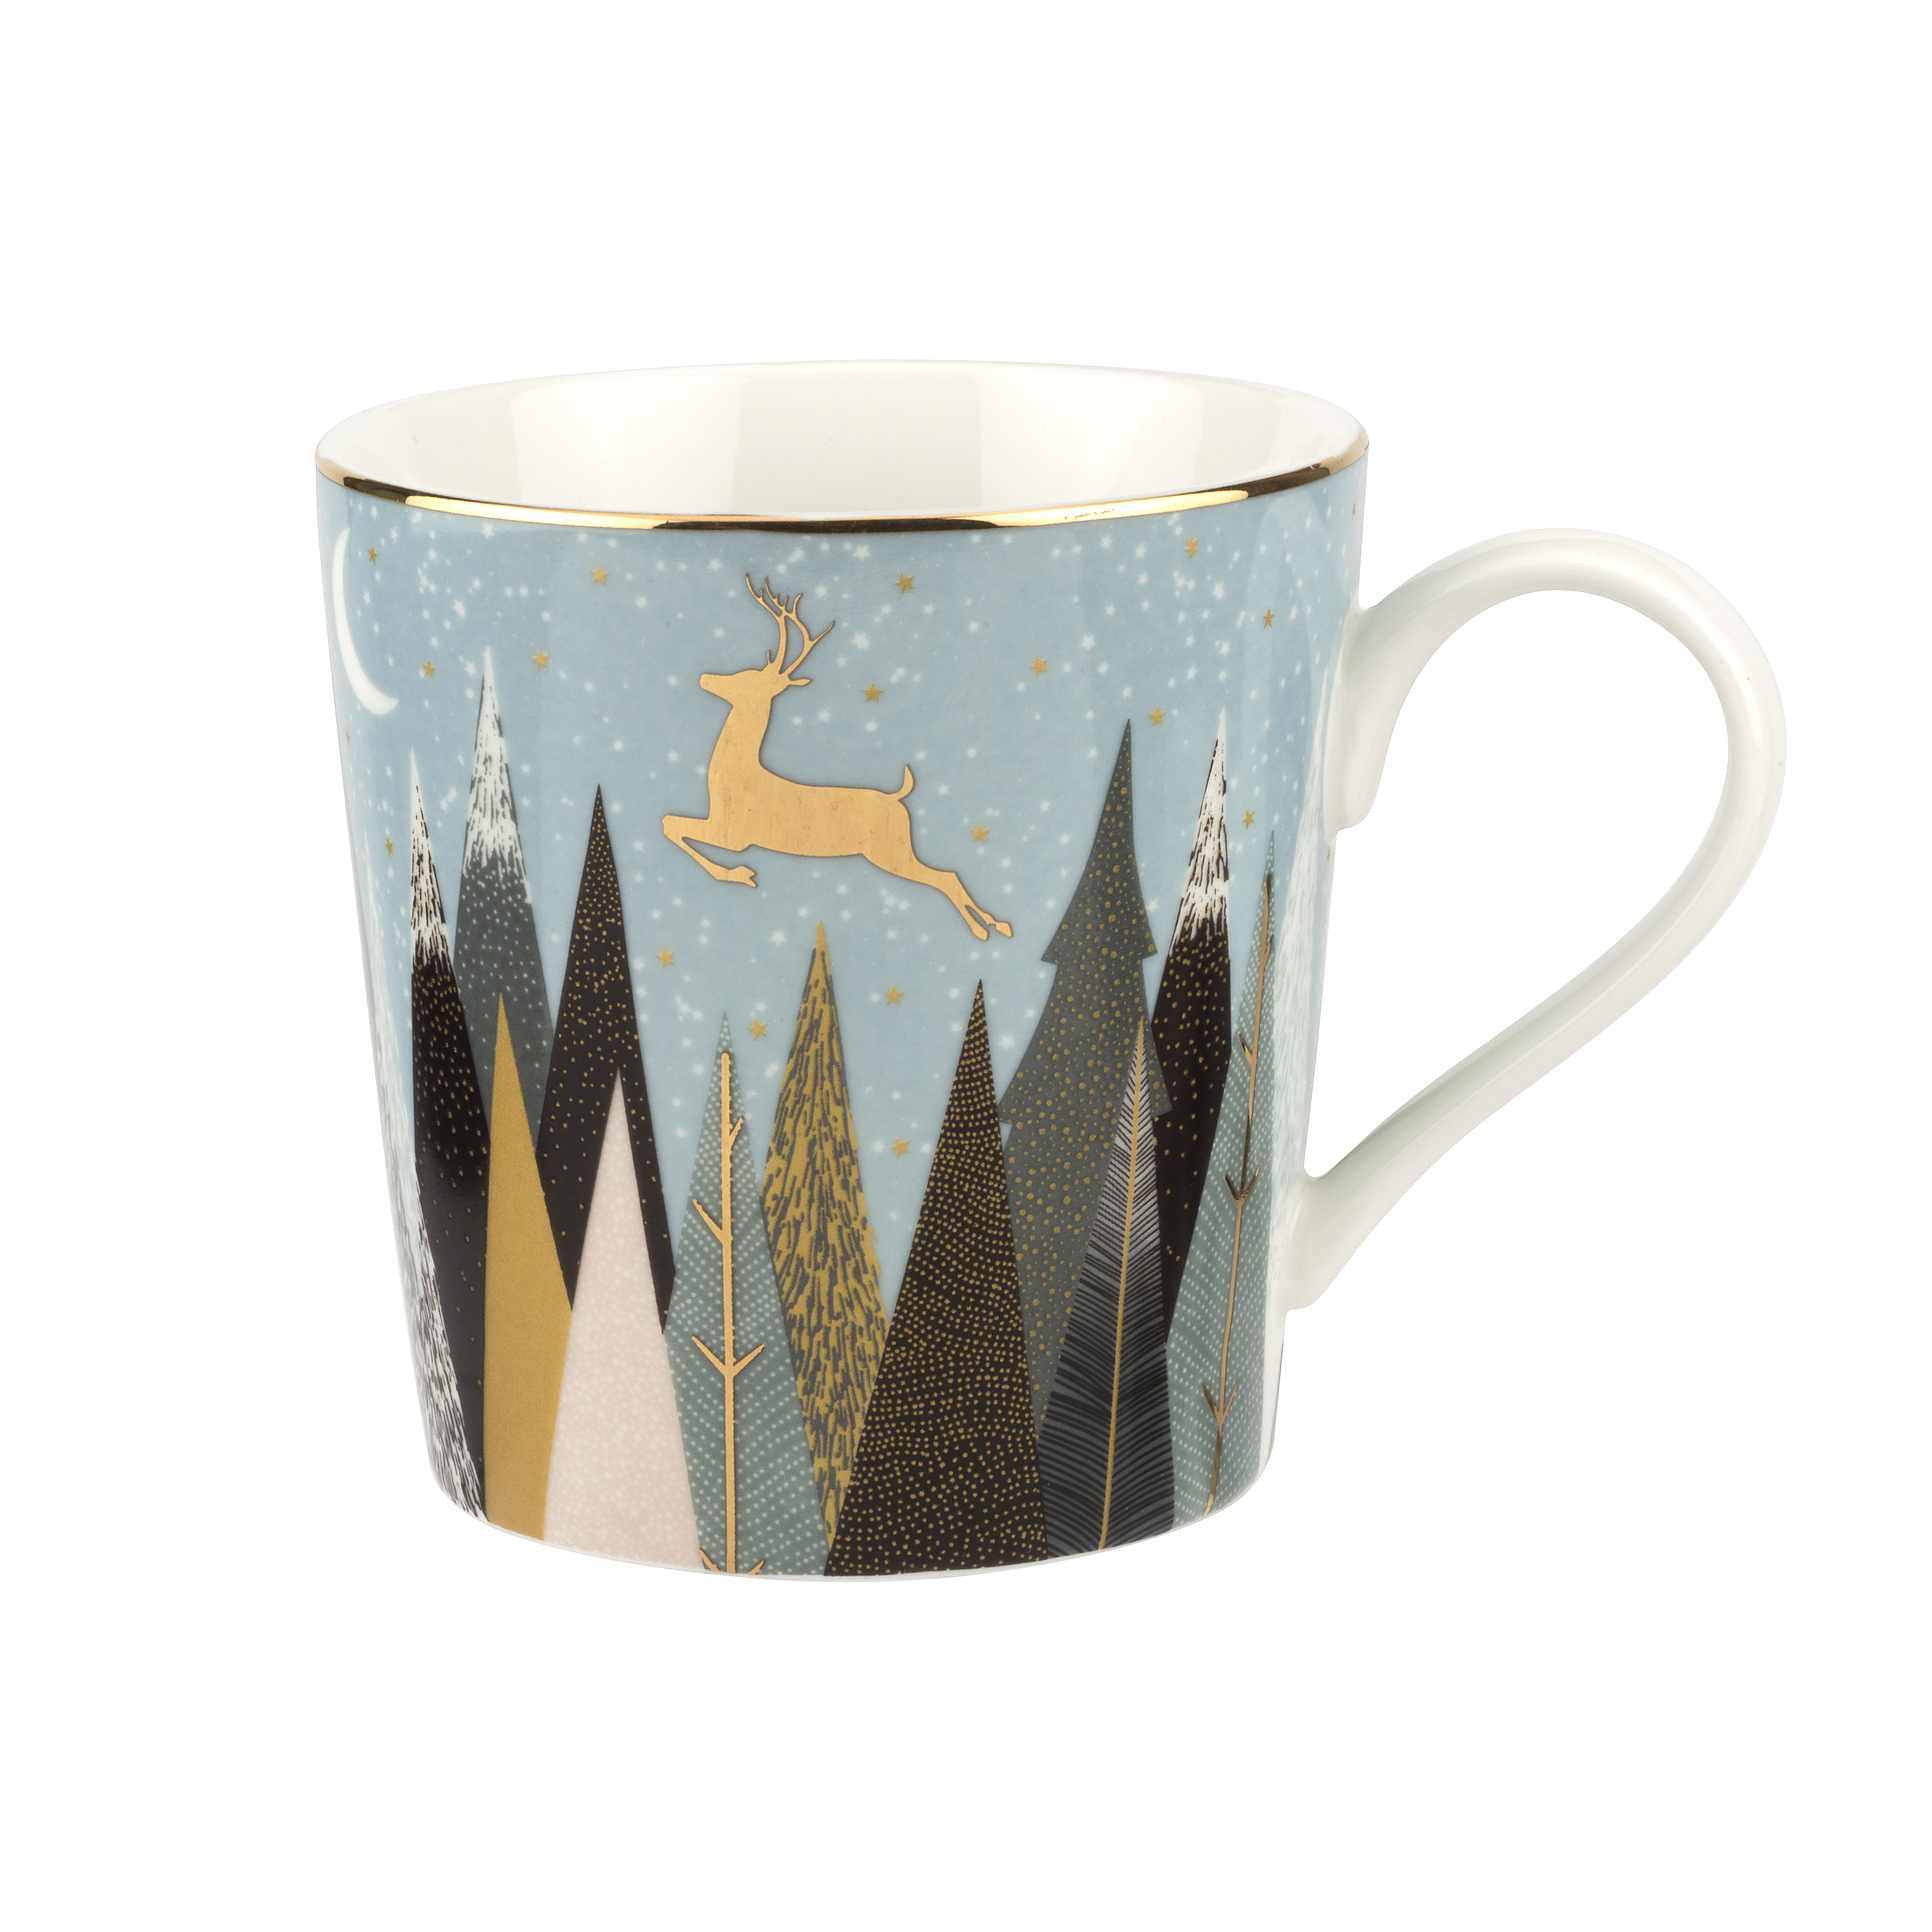 Sara Miller London for Portmeirion Frosted Pines Set of 4 Mugs 12 oz image number 2